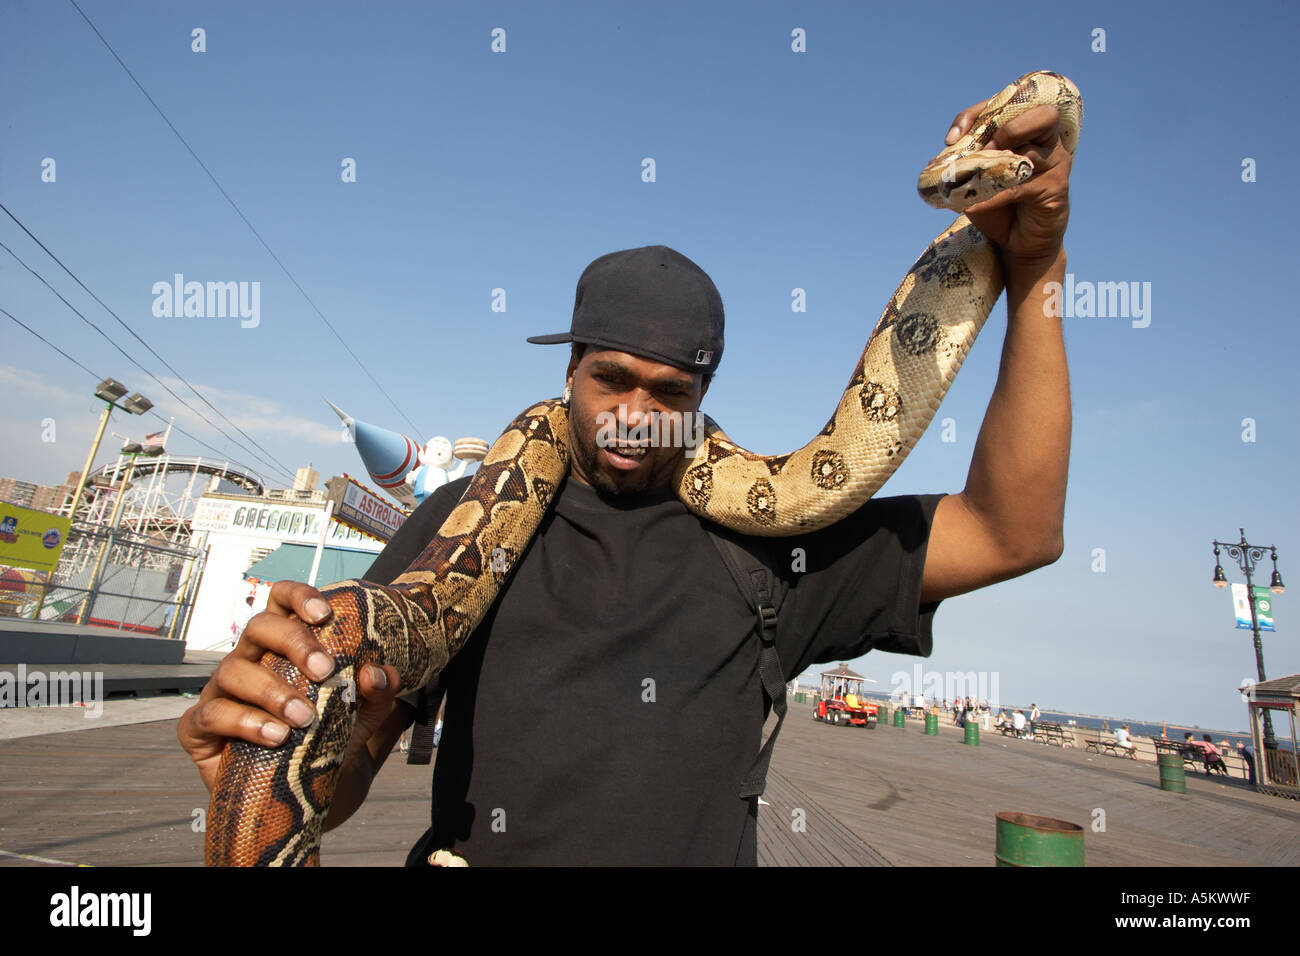 Man with pet python on the boardwalk at Coney Island - Stock Image